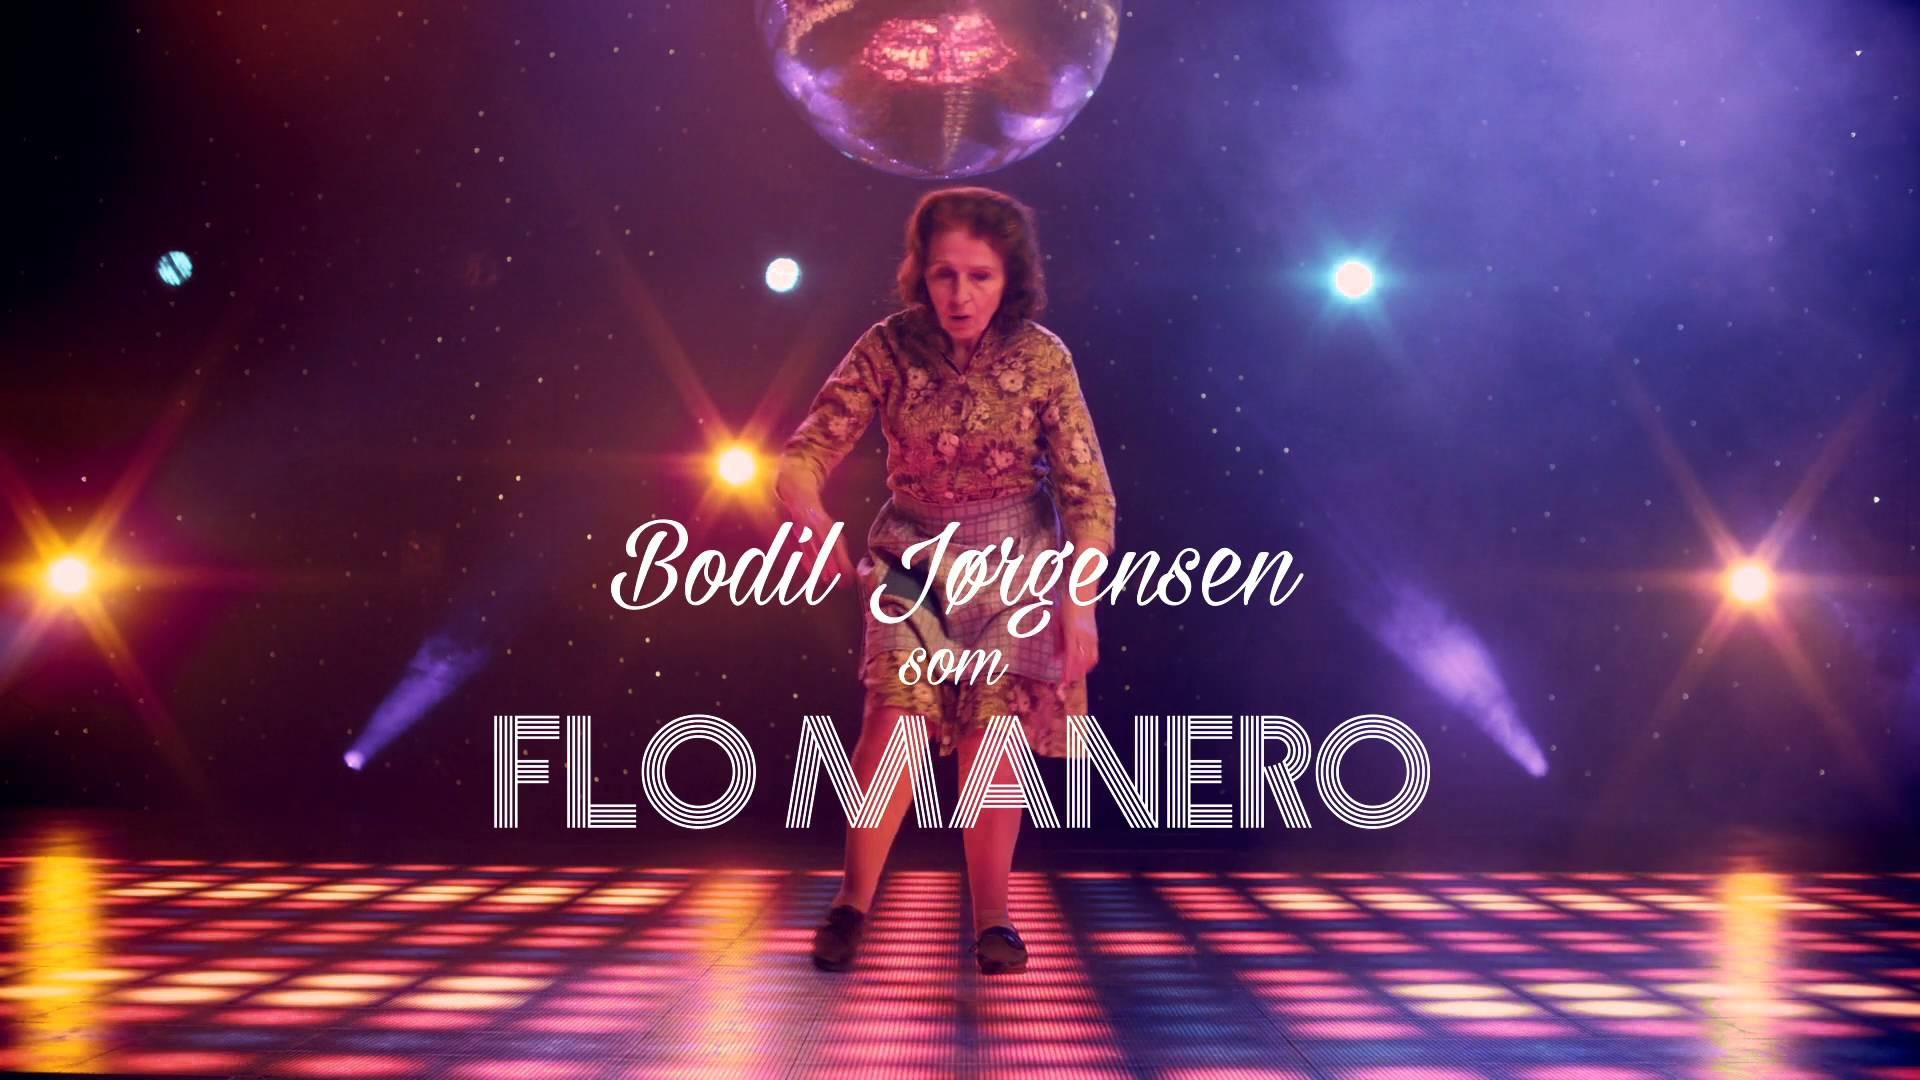 1920x1080 Saturday Night Fever The Musical - Bodil Jørgensen